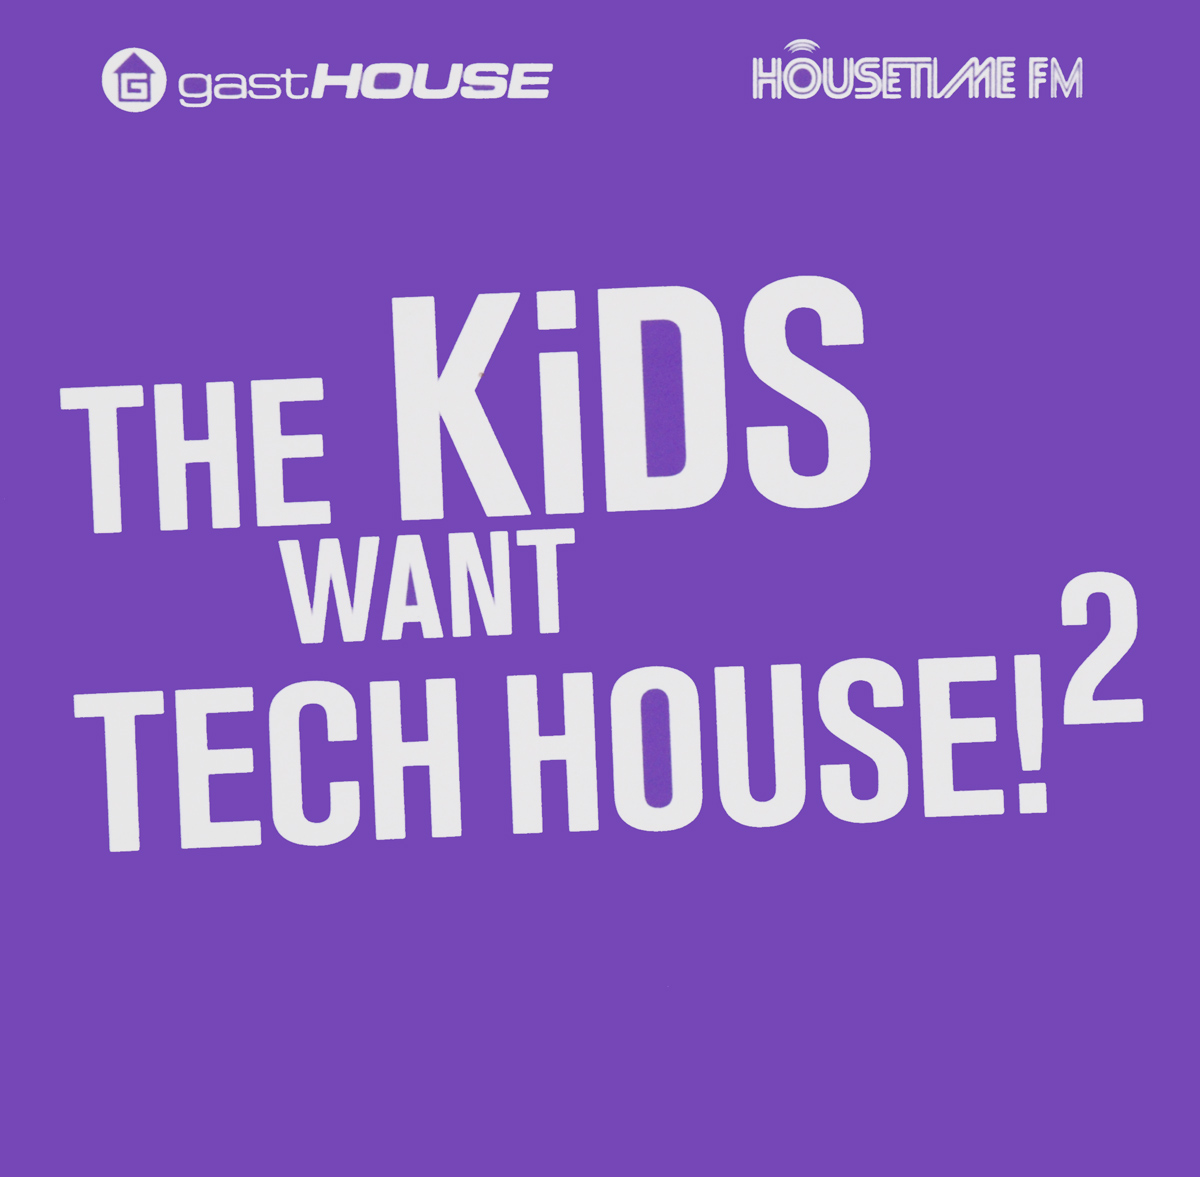 The Kids Want Tech House! 2 (2 CD)